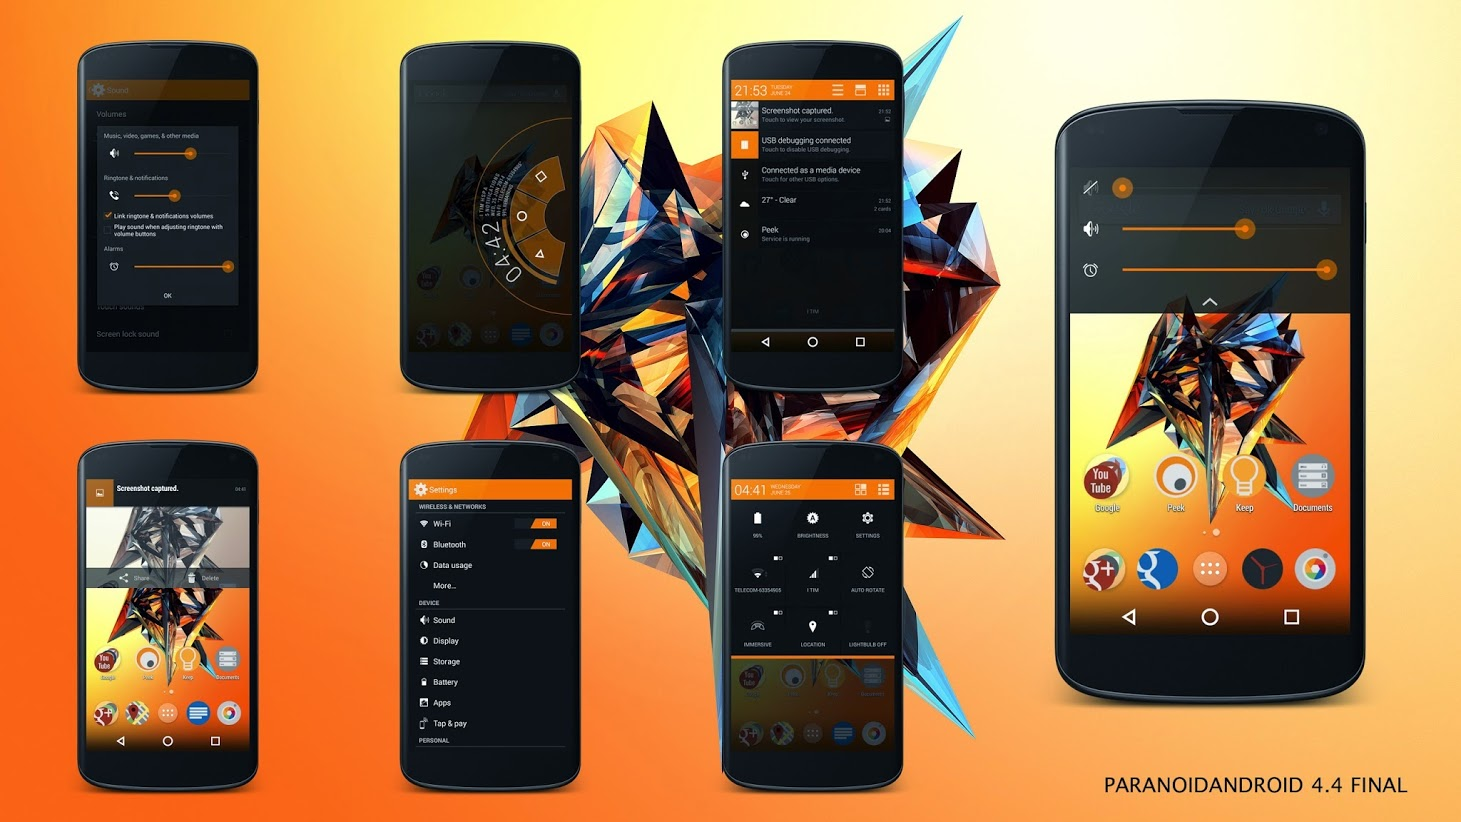 ParanoidAndroid Final ROM Brings Android 4.4.4 KitKat for ...